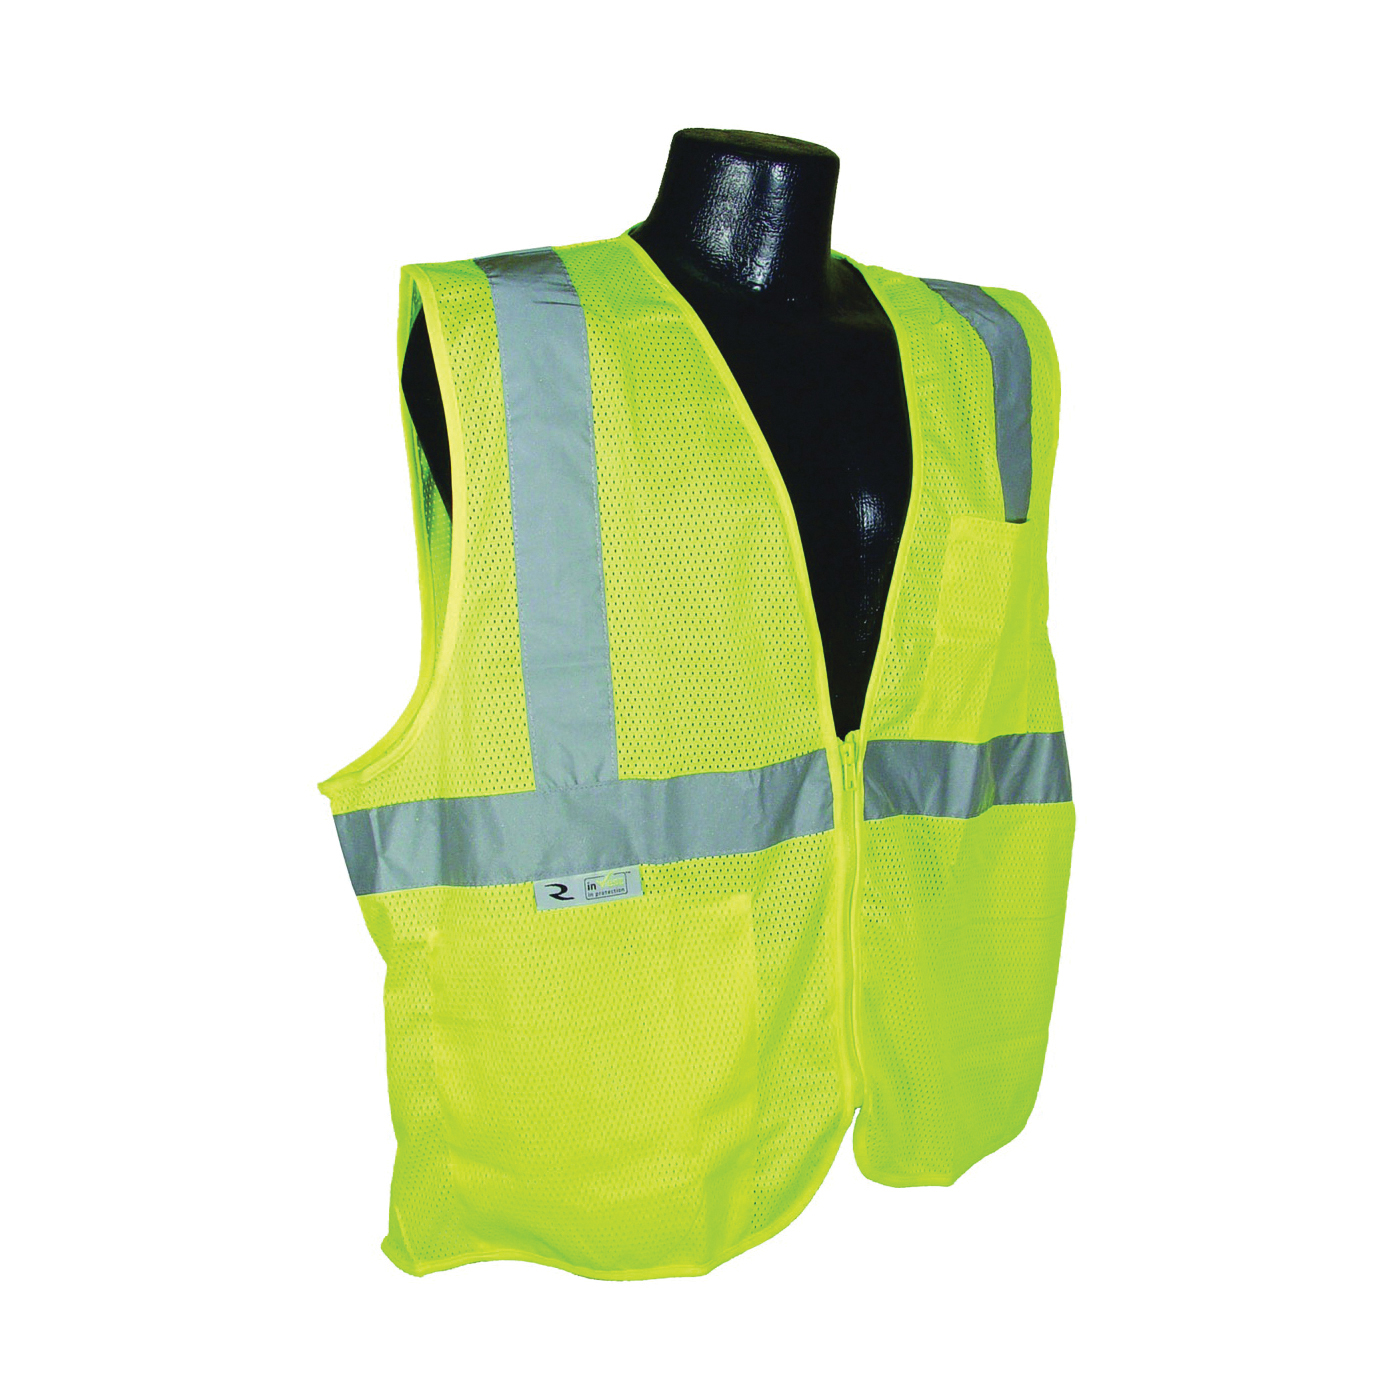 Picture of RADWEAR SV2ZGM-XL Safety Vest, XL, Unisex, Fits to Chest Size: 28 in, Polyester, Green/Silver, Zipper Closure